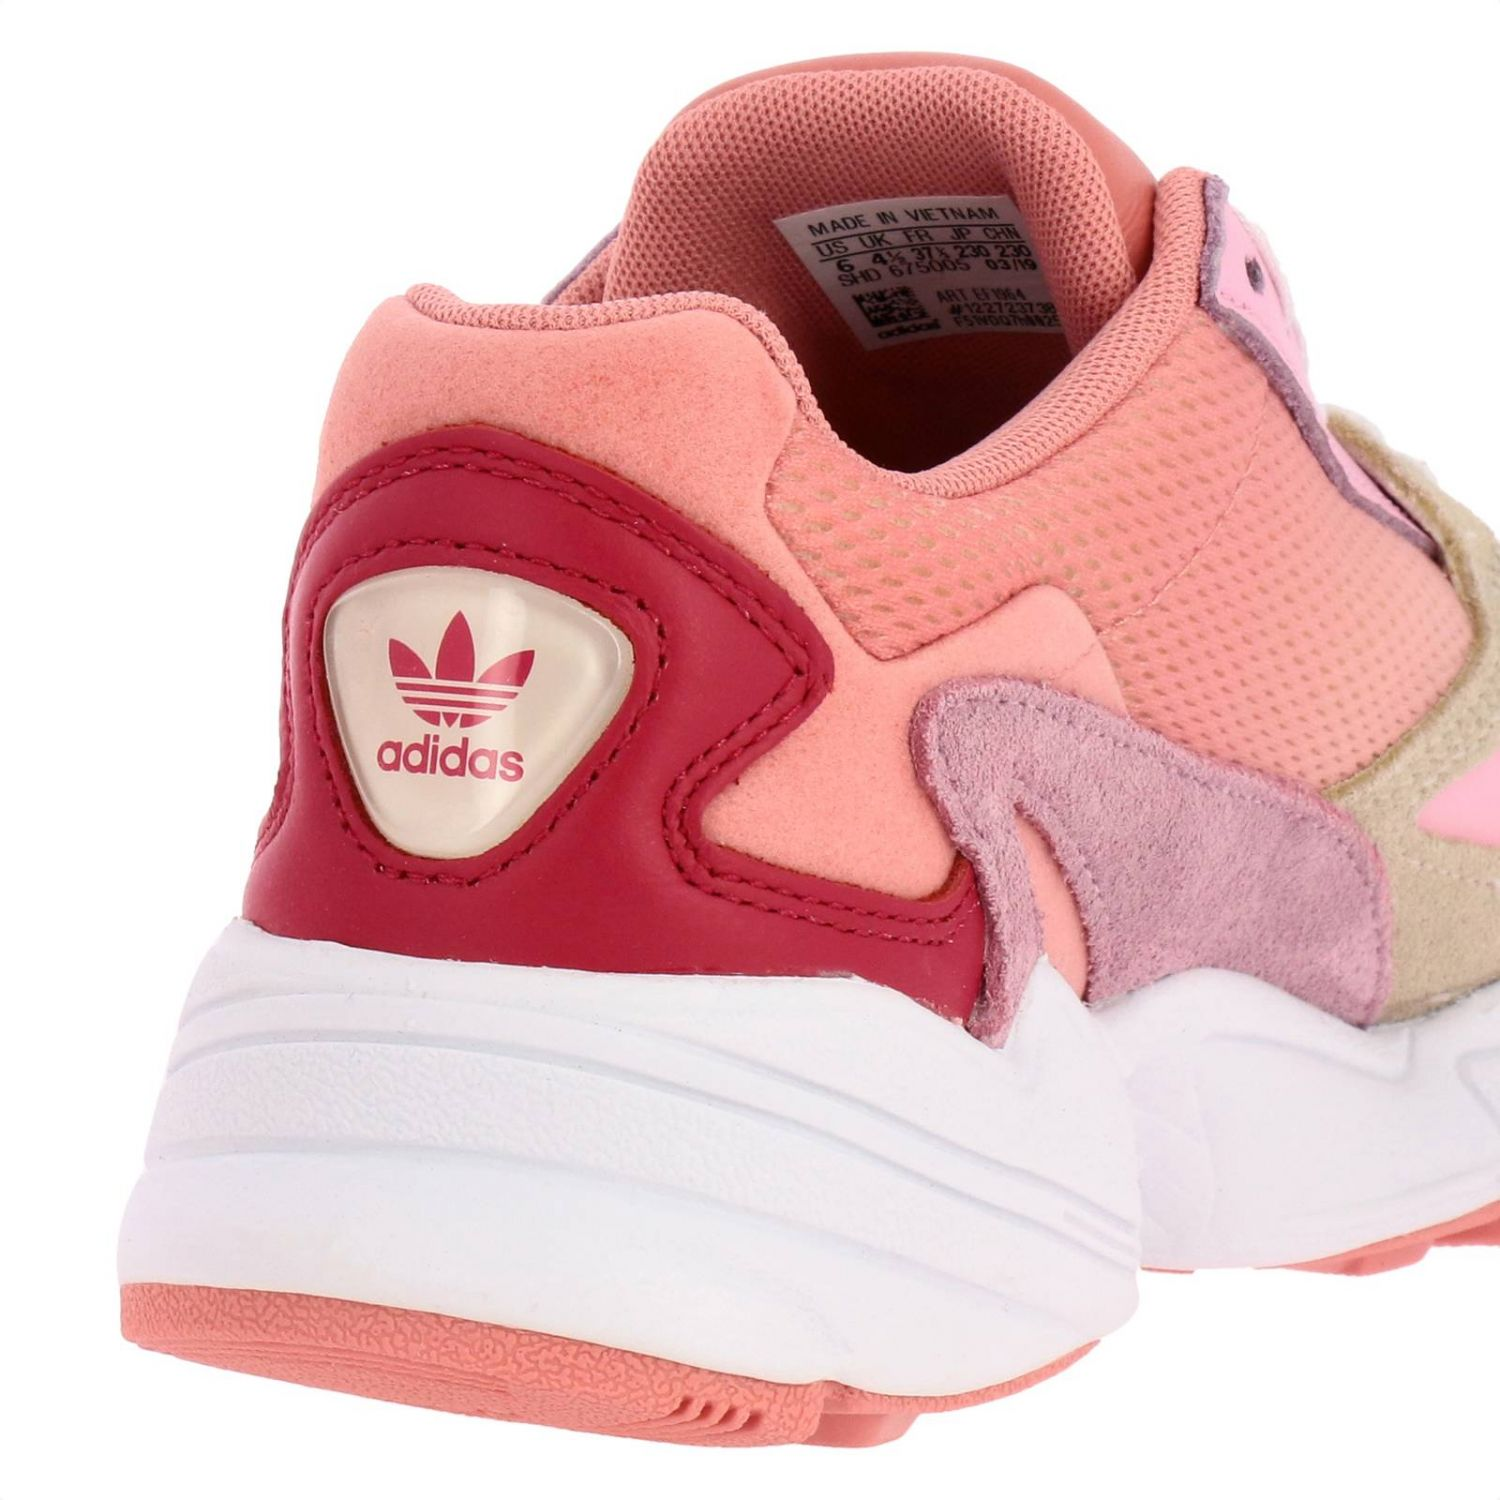 Sneakers Adidas Originals: Sneakers Falcon W Adidas Originals in rete pelle e camoscio rosa 4